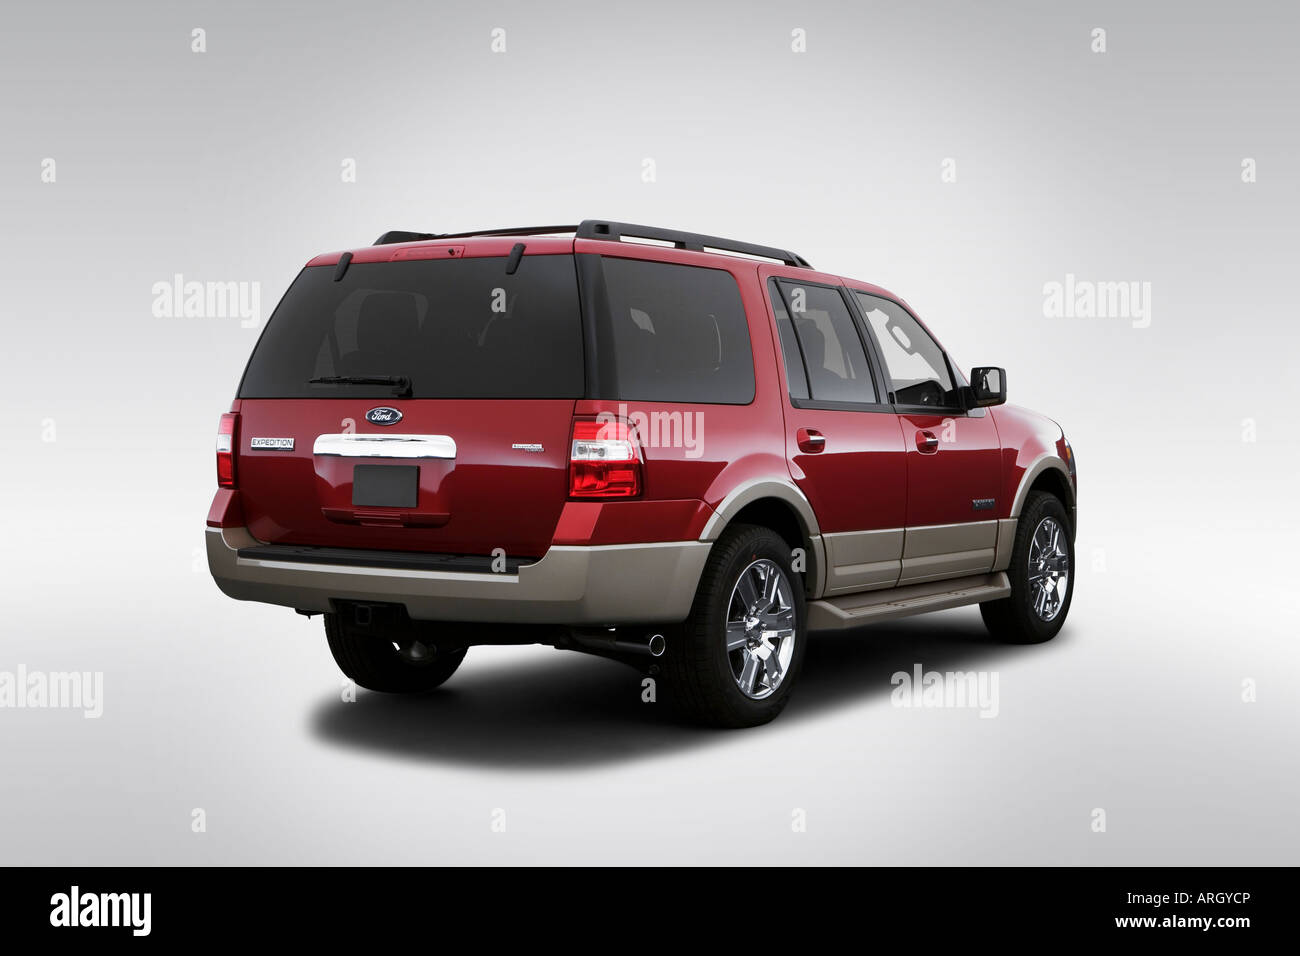 2007 ford expedition eddie bauer in red rear angle view stock photo royalty free image. Black Bedroom Furniture Sets. Home Design Ideas